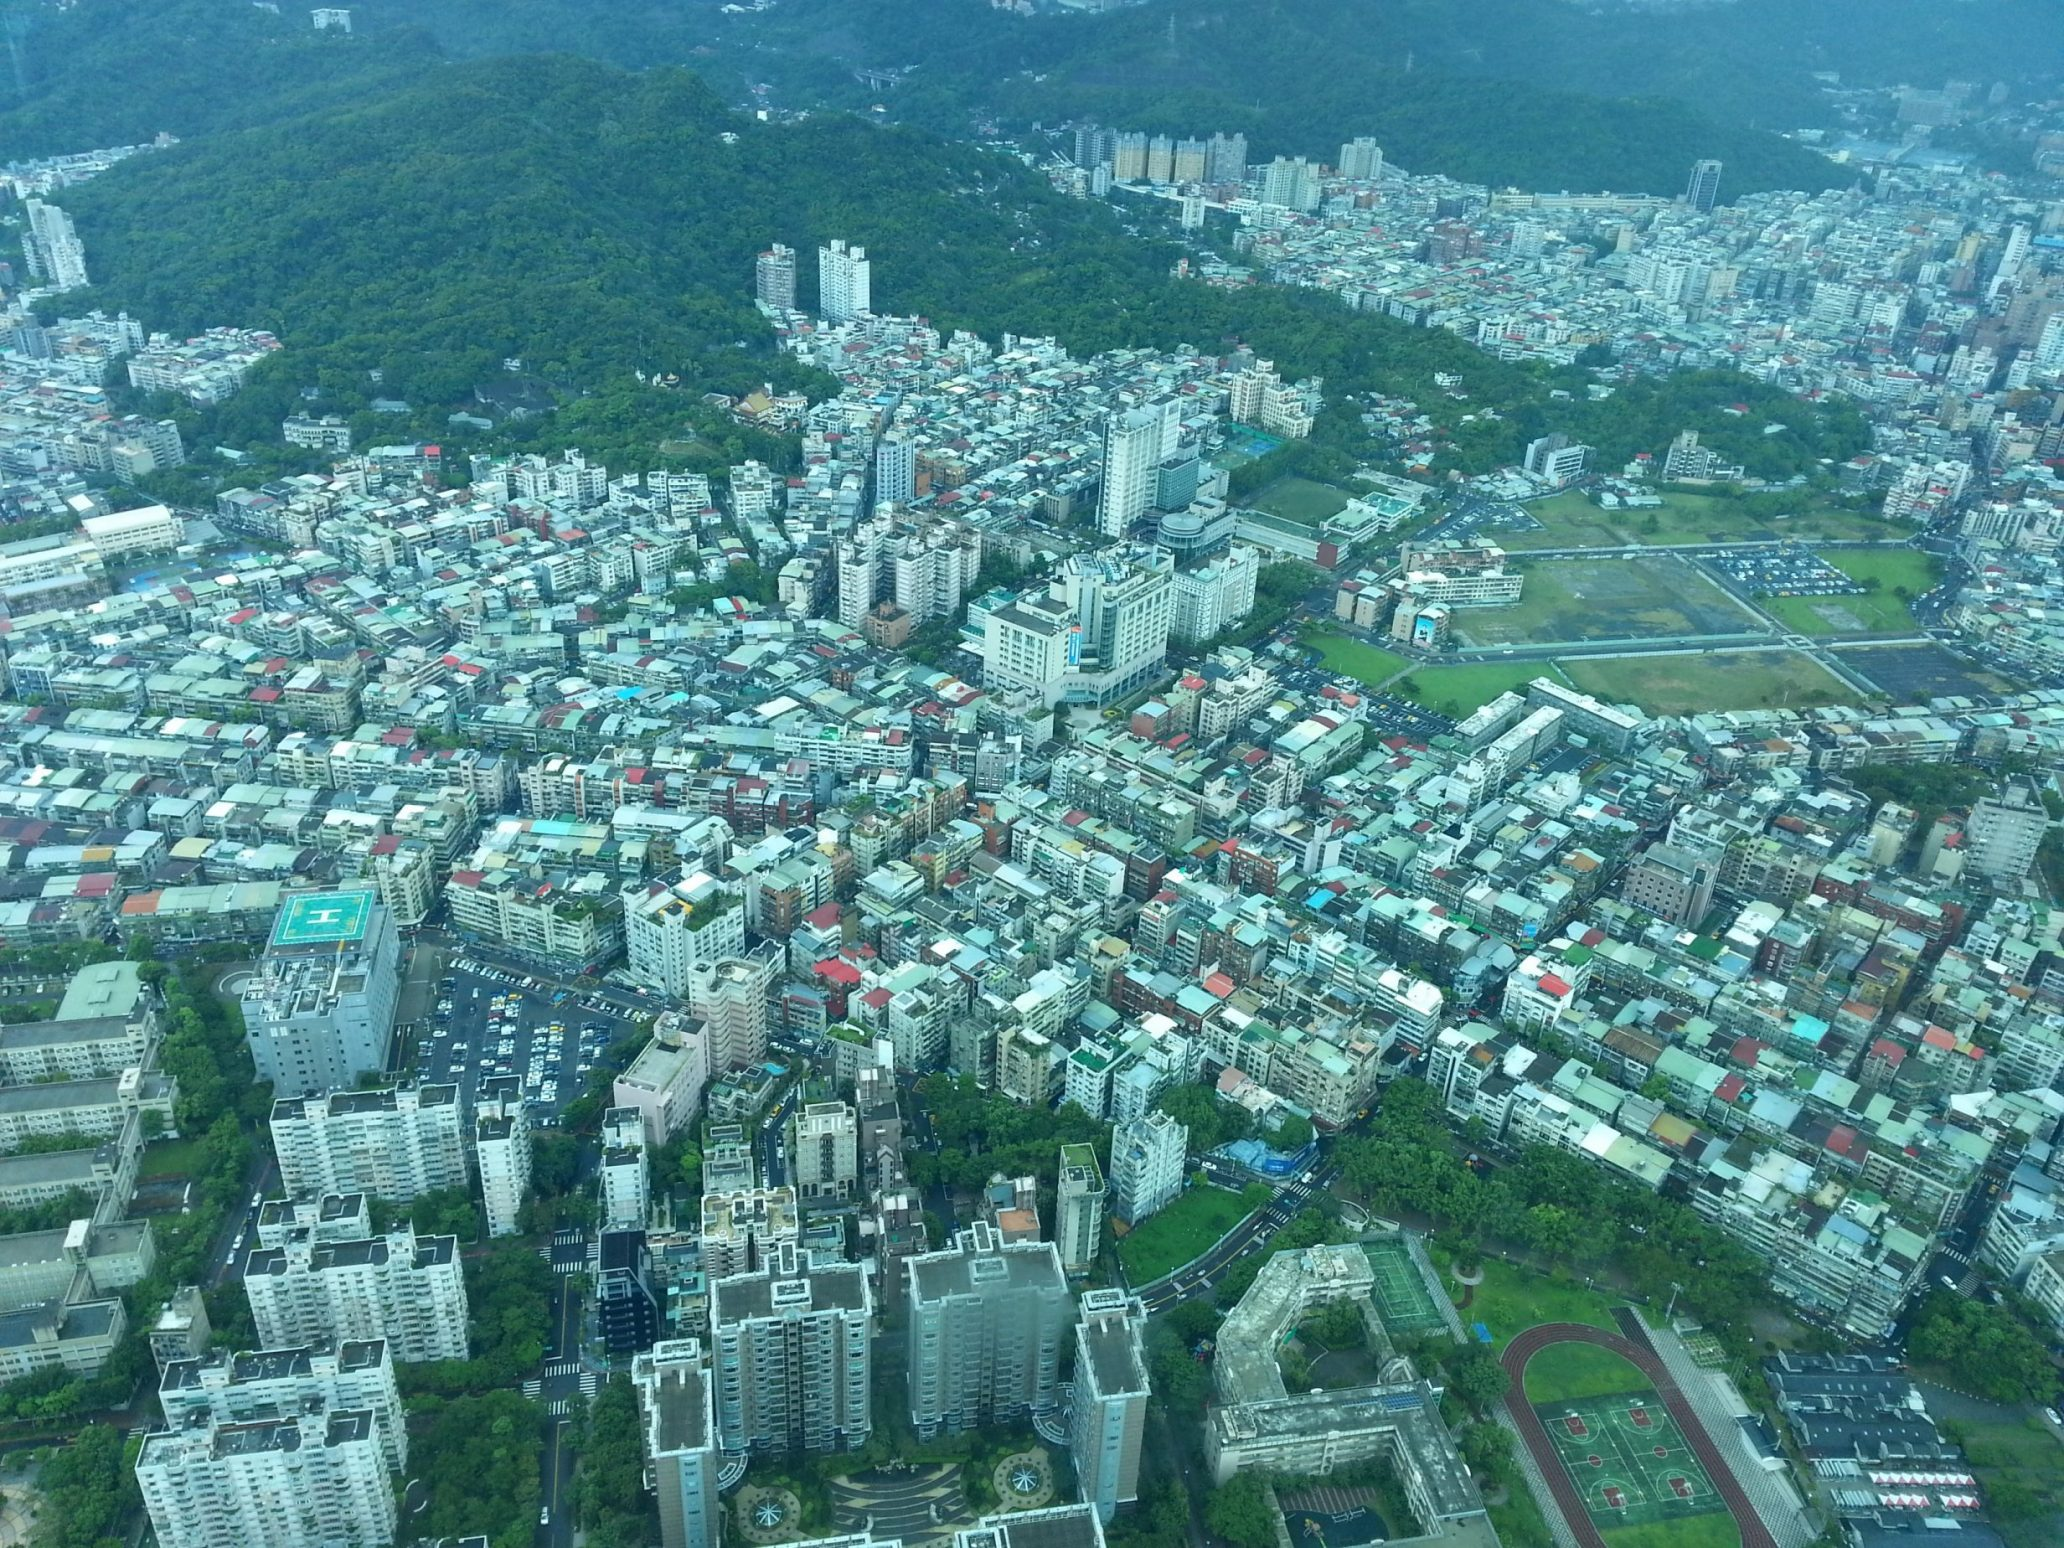 taipei view from the tower